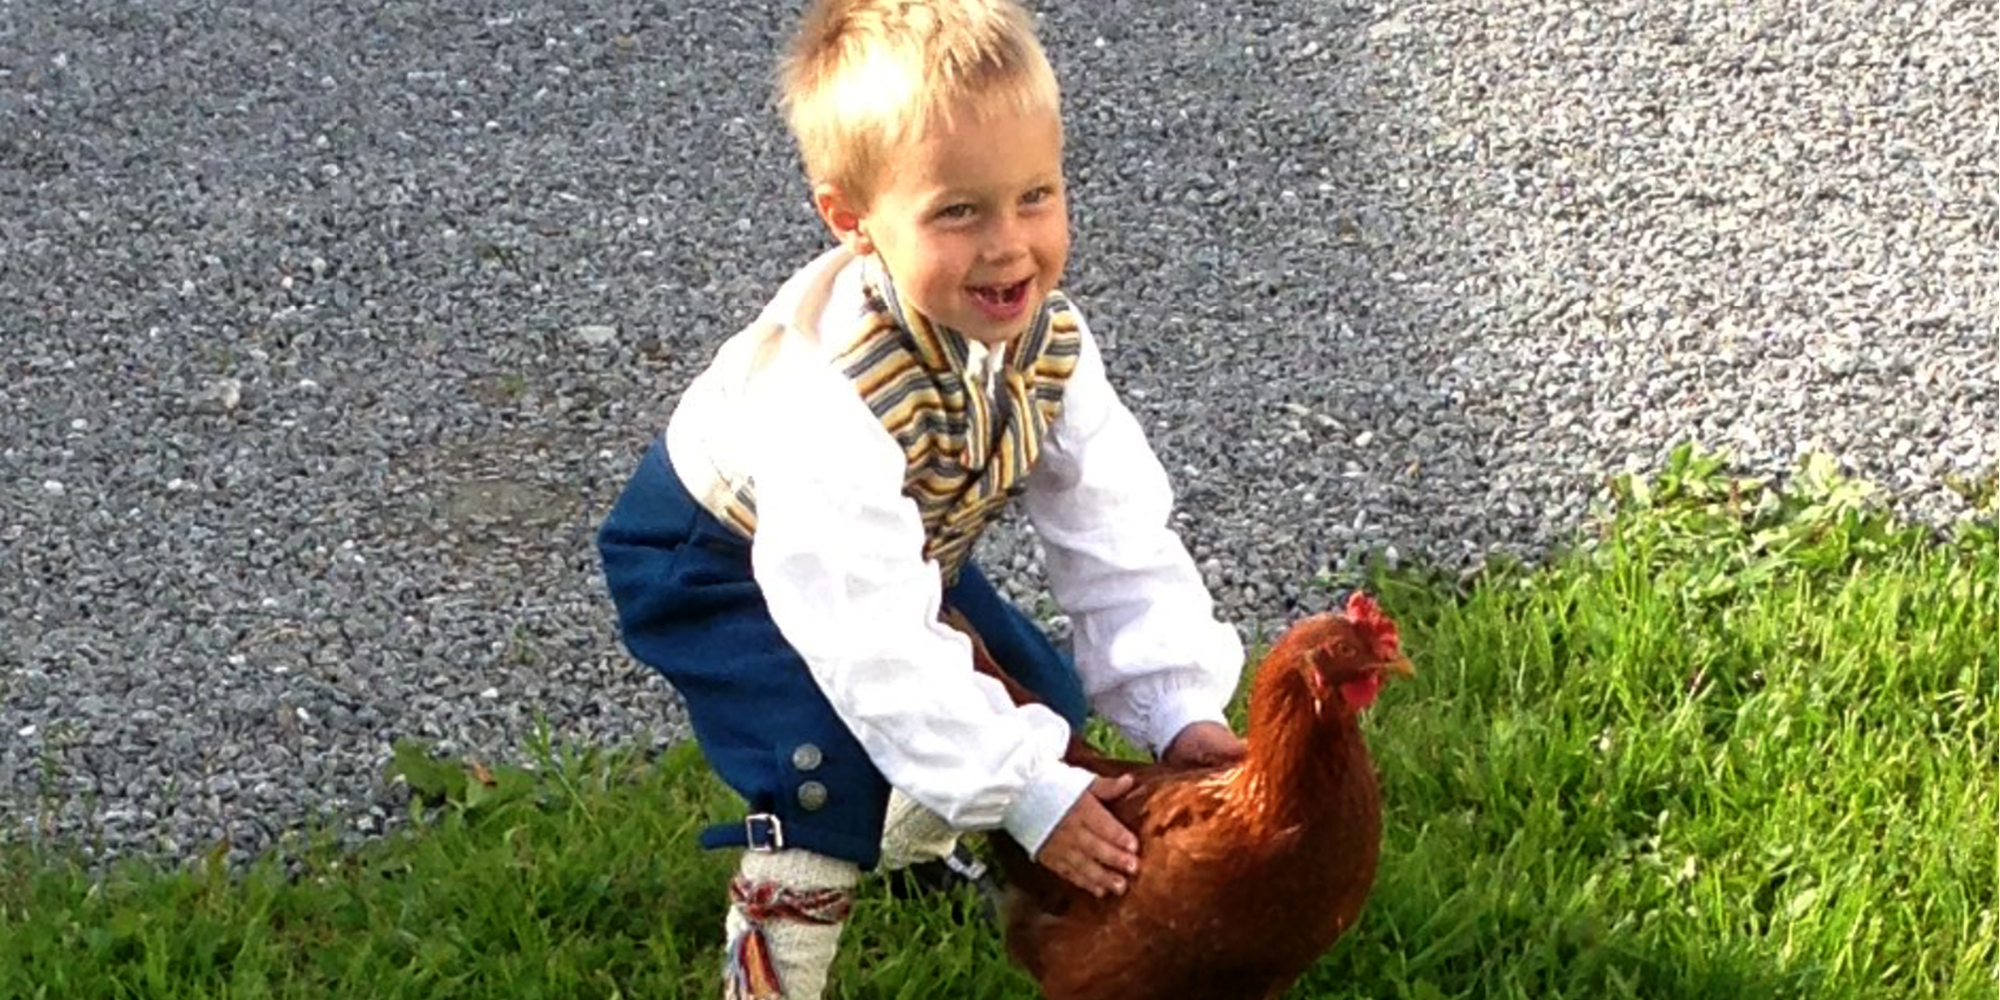 Husfrua gårdshotell - member of Golden Road, Inderøy - boy and hen . Copyright: Husfrua Gårdshotell